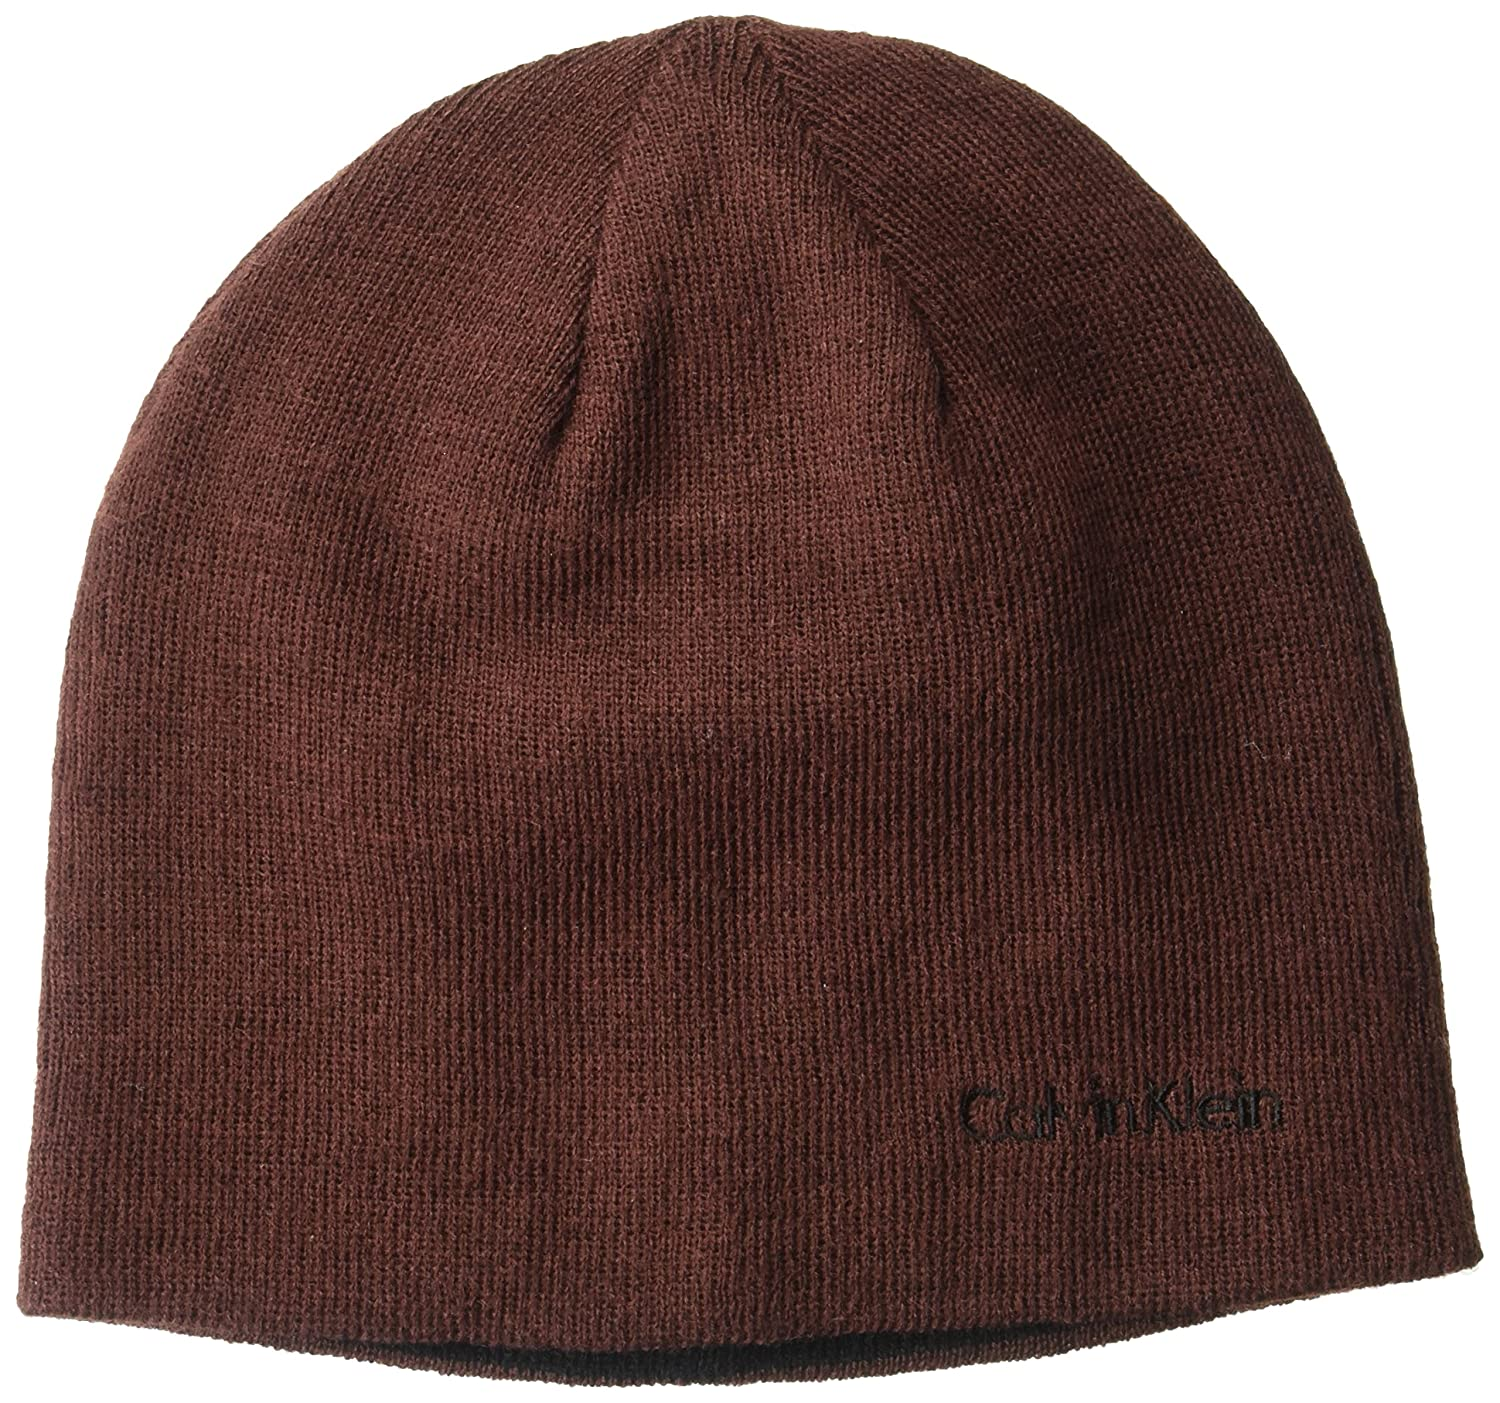 Calvin Klein Unisex Reversible Solid Winter Hat, Claret, One Size HCKHT293